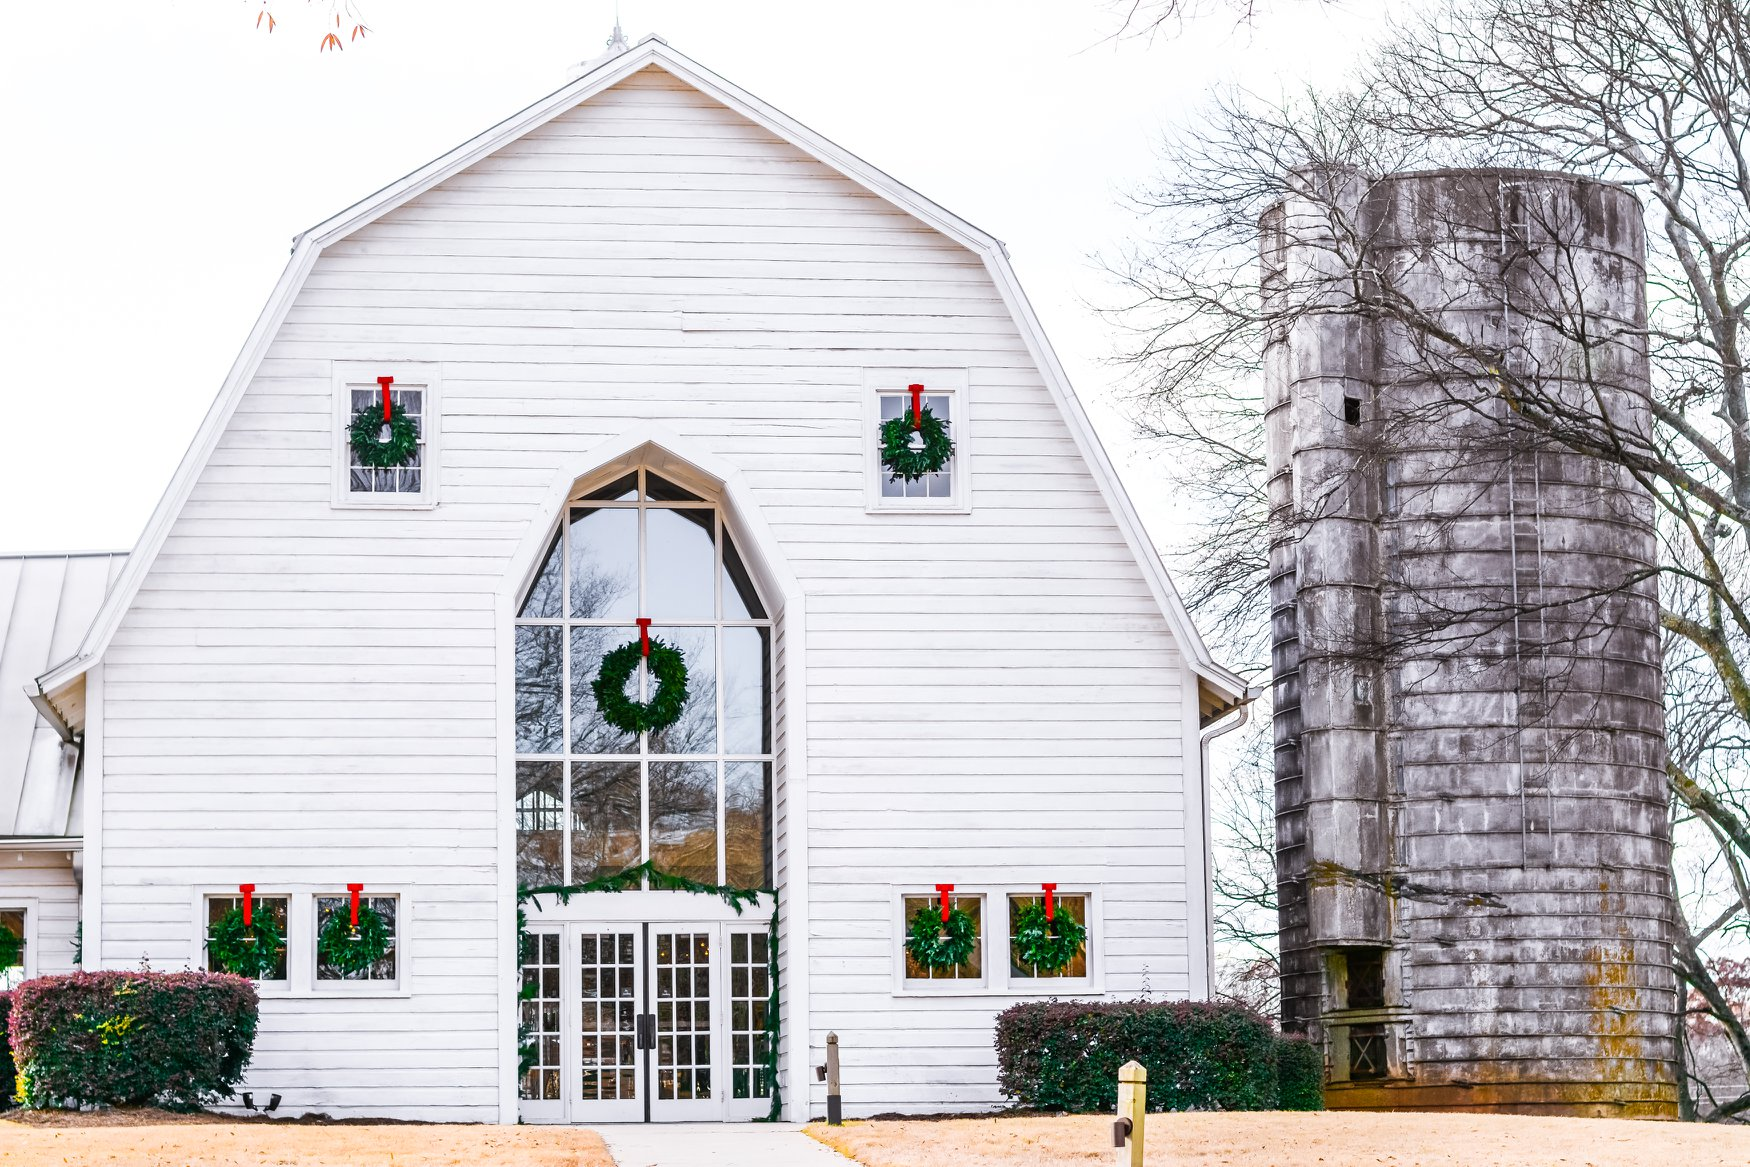 Dairy Barn decorated for Christmas